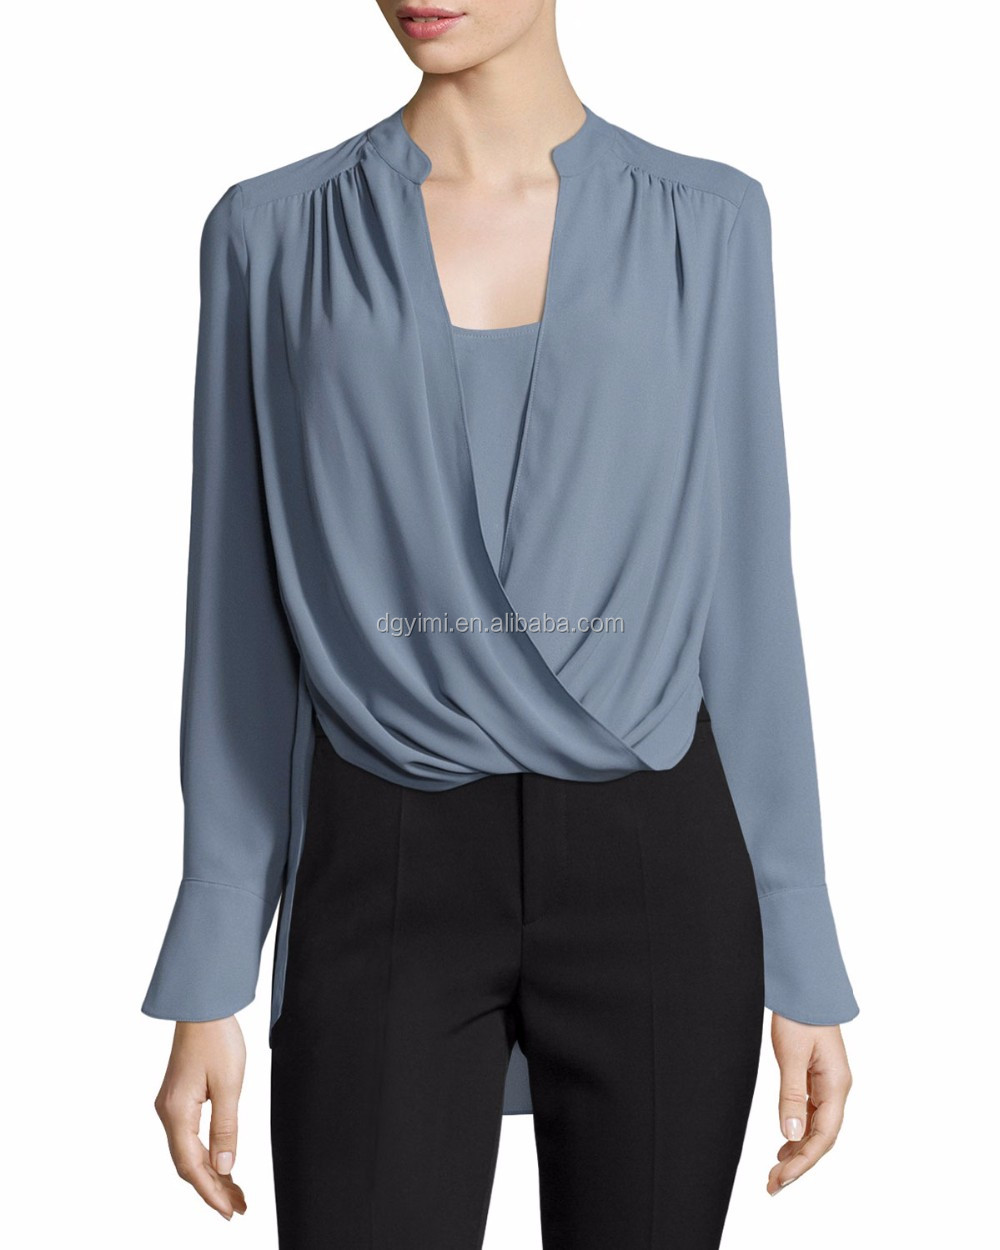 high low hem cross draped front blouse